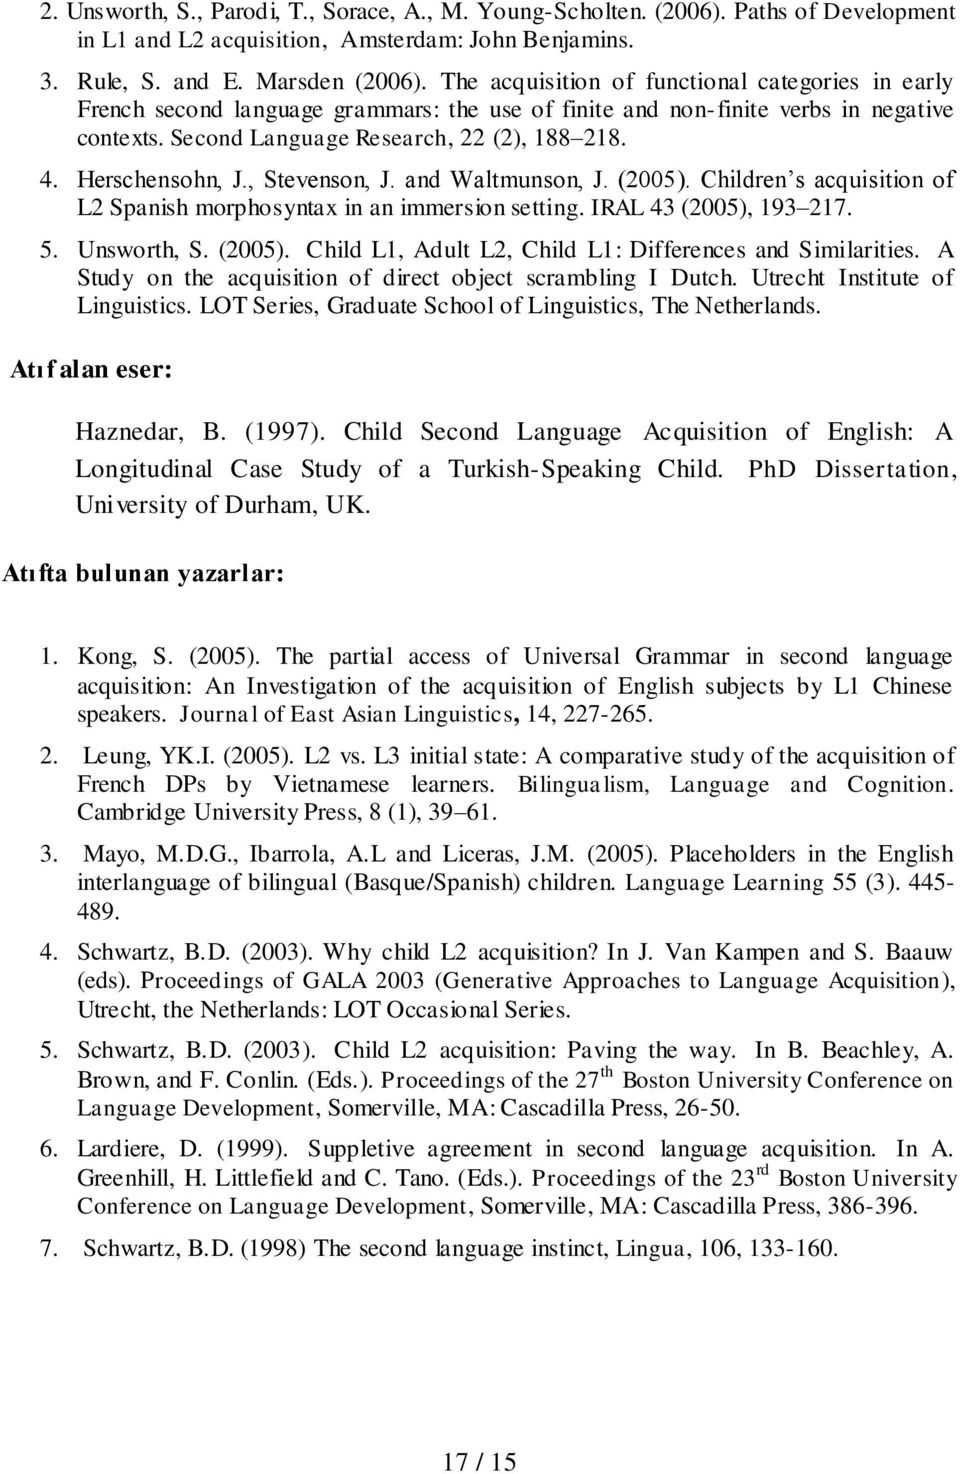 Herschensohn, J., Stevenson, J. and Waltmunson, J. (2005). Children s acquisition of L2 Spanish morphosyntax in an immersion setting. IRAL 43 (2005), 193 217. 5. Unsworth, S. (2005). Child L1, Adult L2, Child L1: Differences and Similarities.